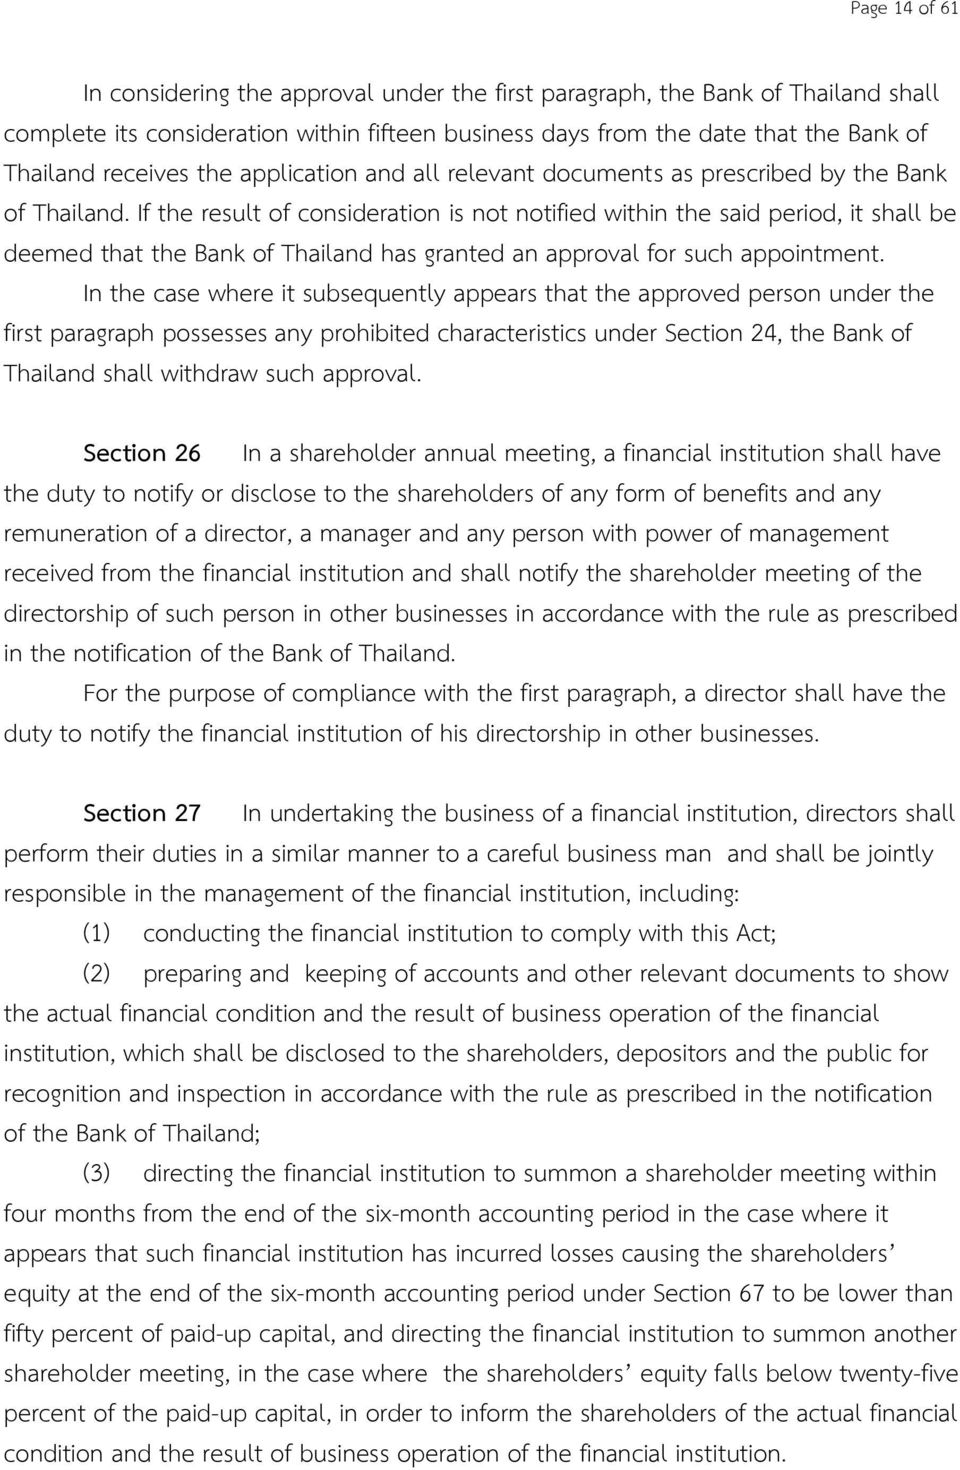 If the result of consideration is not notified within the said period, it shall be deemed that the Bank of Thailand has granted an approval for such appointment.